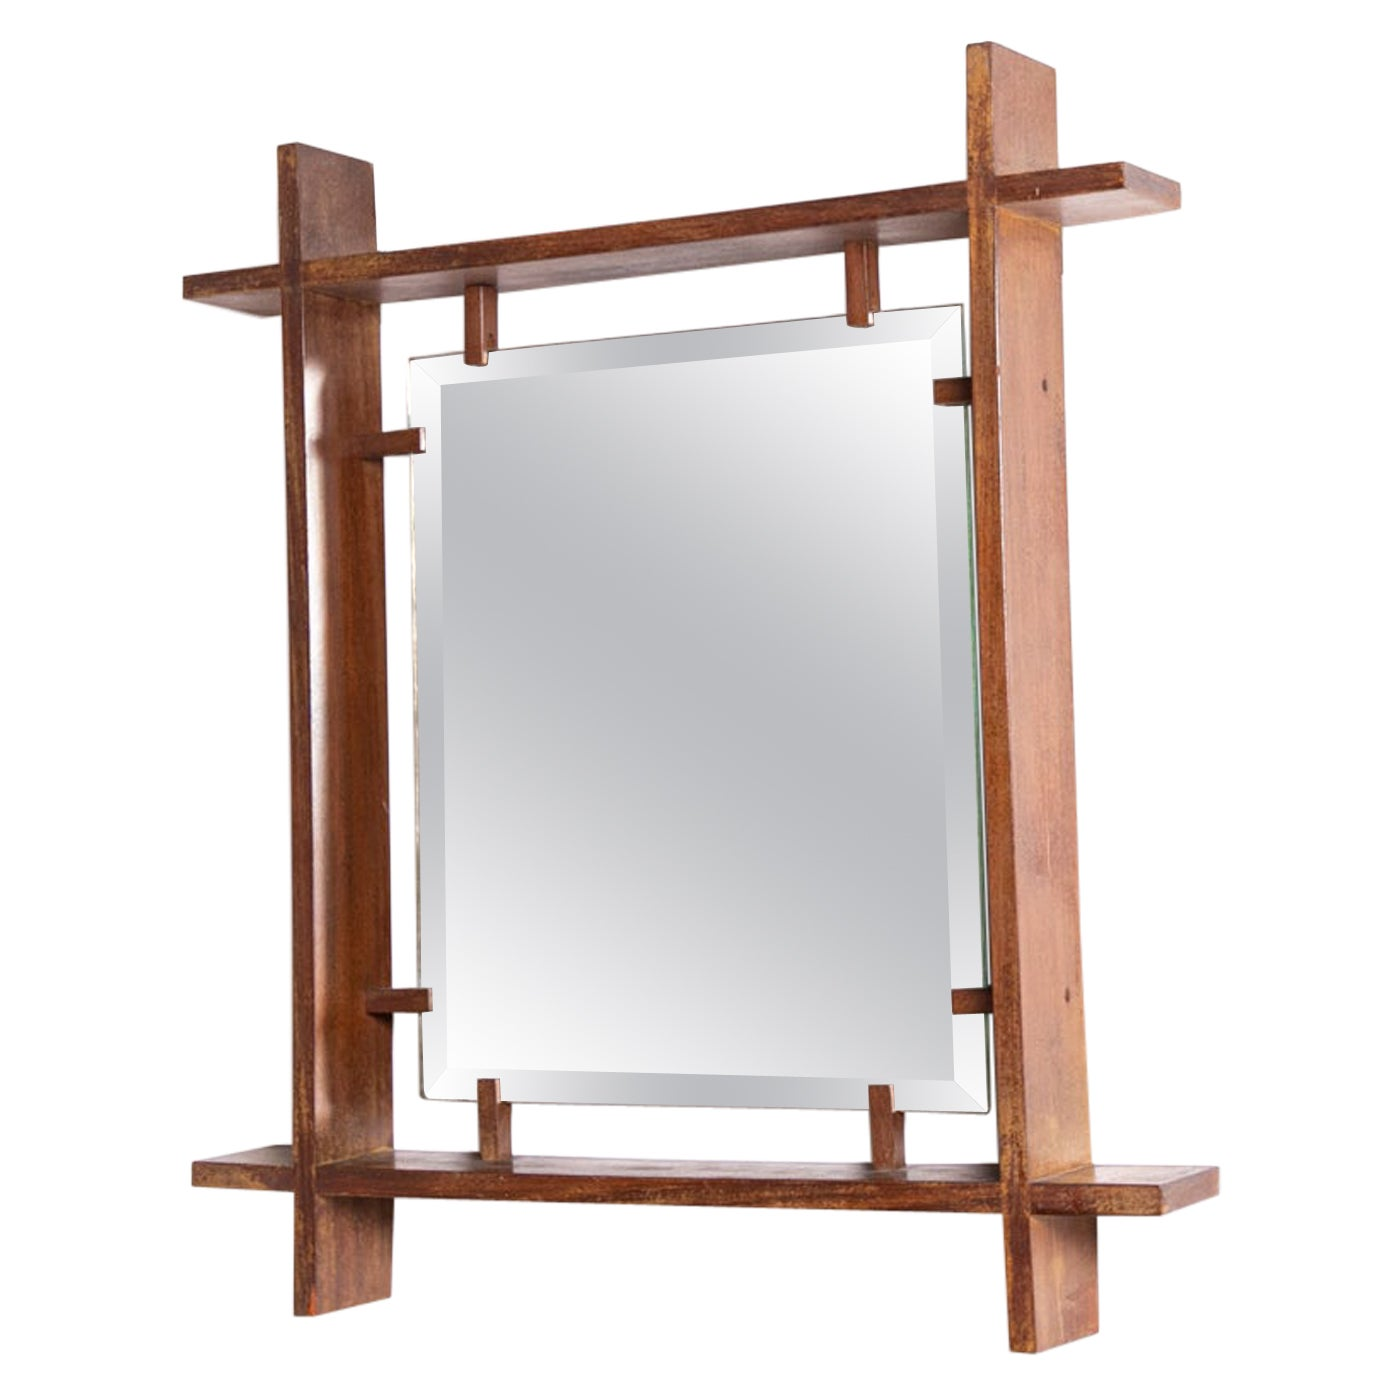 Italian Mirror Attributed to Ettore Sottsass in Wood, 1950s